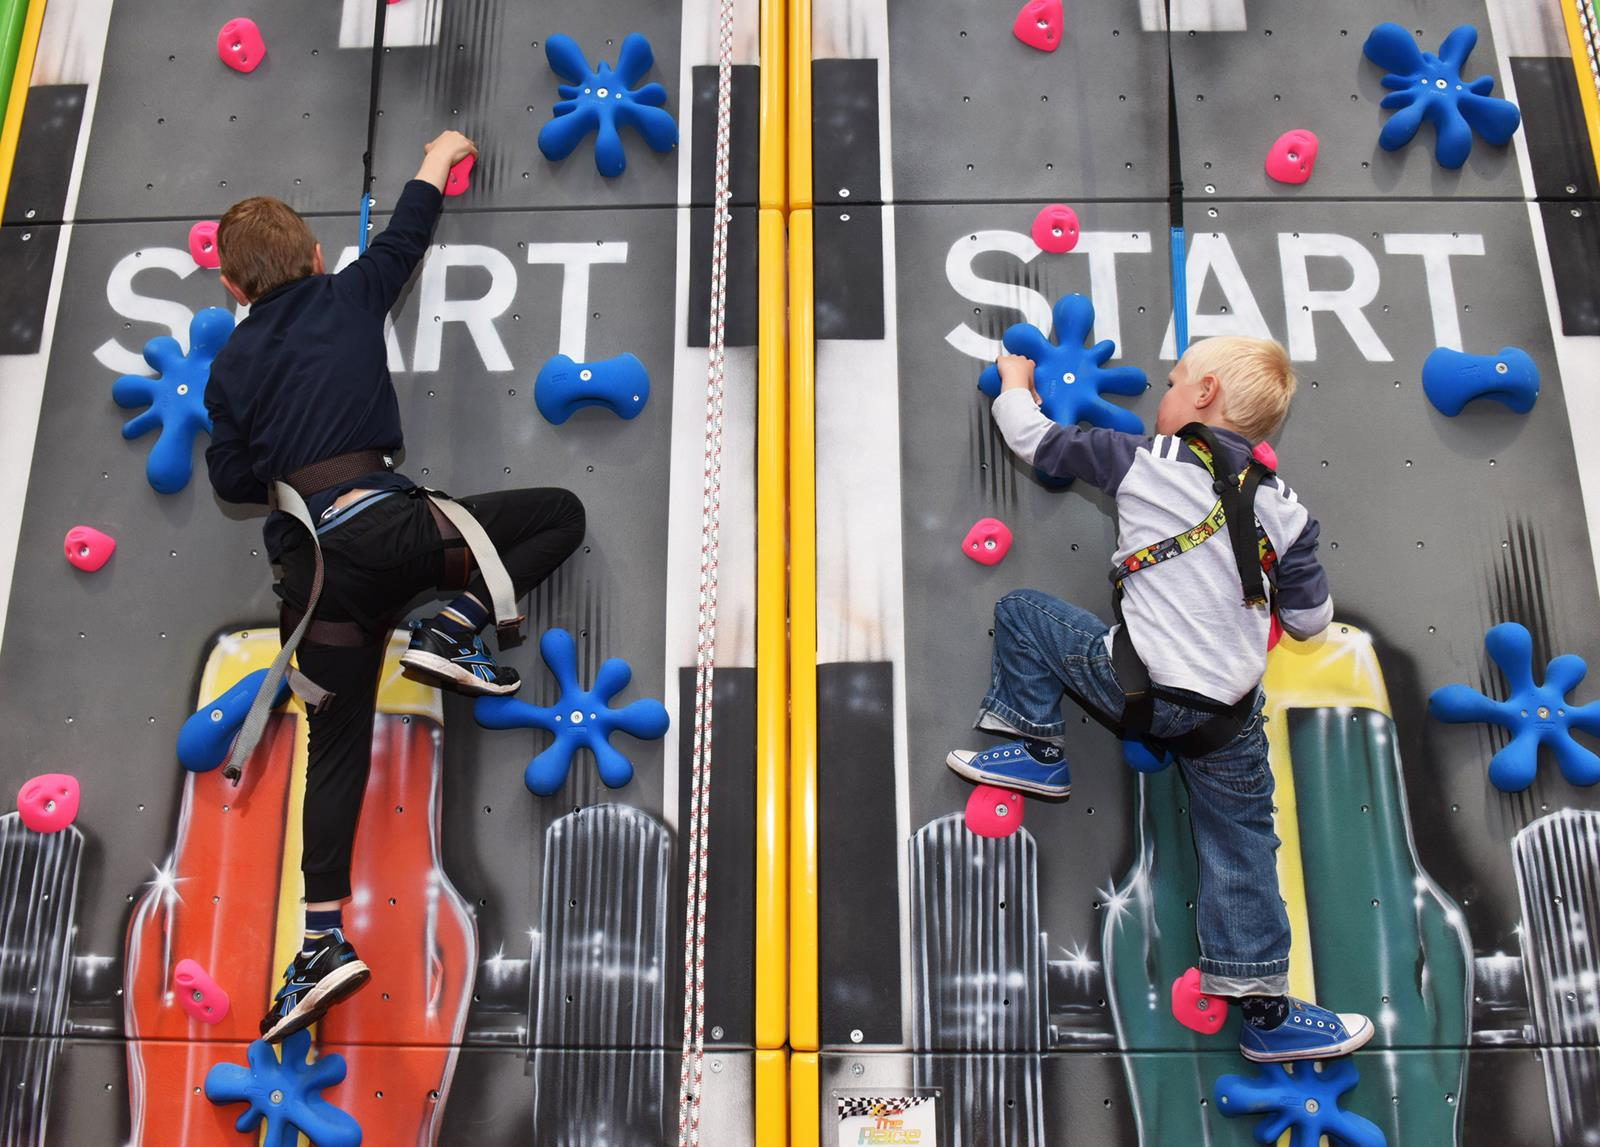 climb-boys-on-climbing-wall